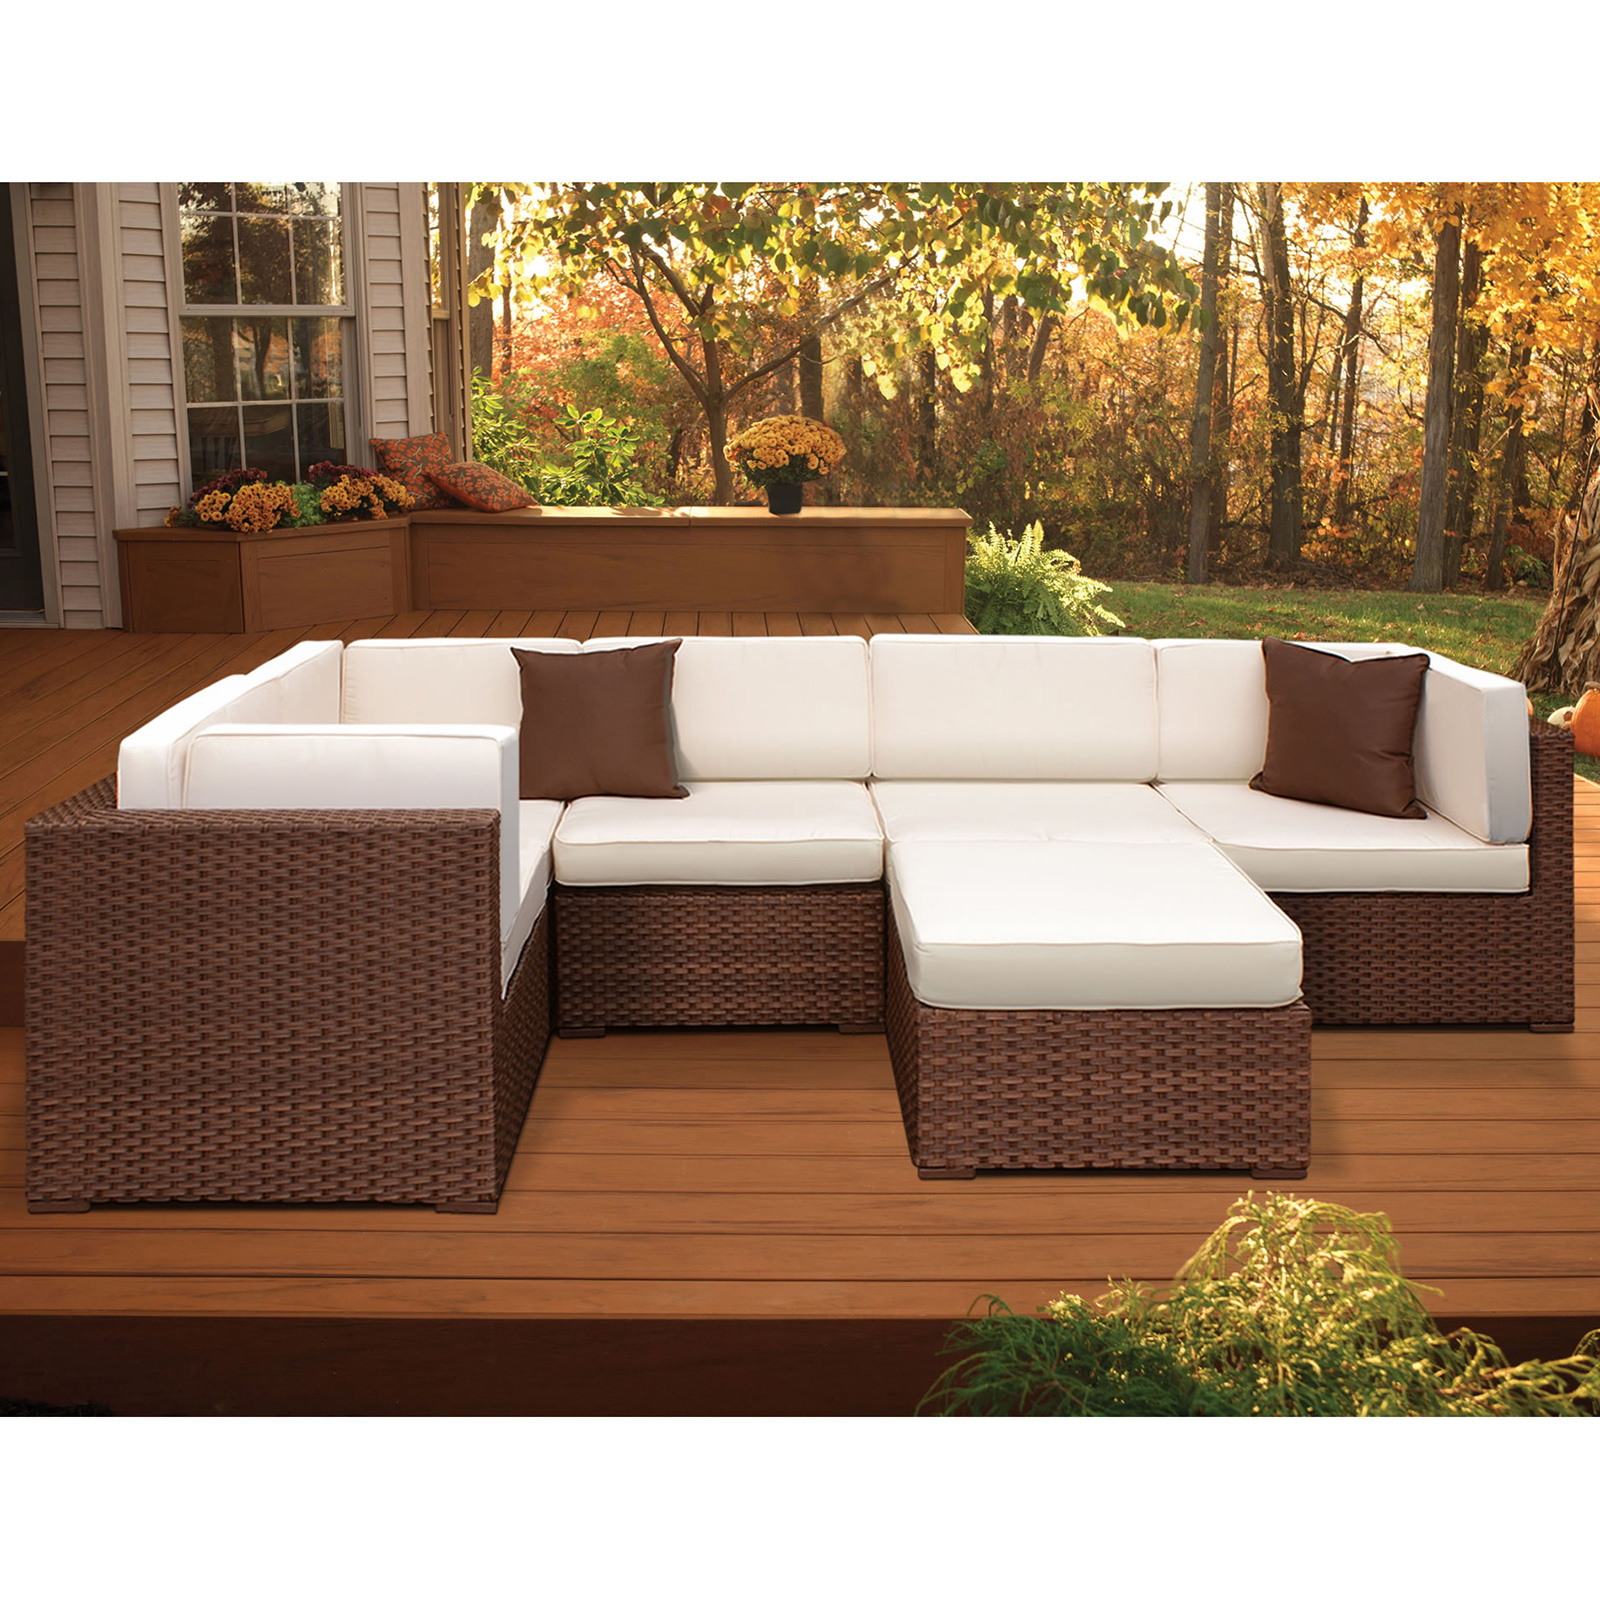 off white sofa sets england furniture company atlantic hampton 6 piece synthetic wicker brown sectional